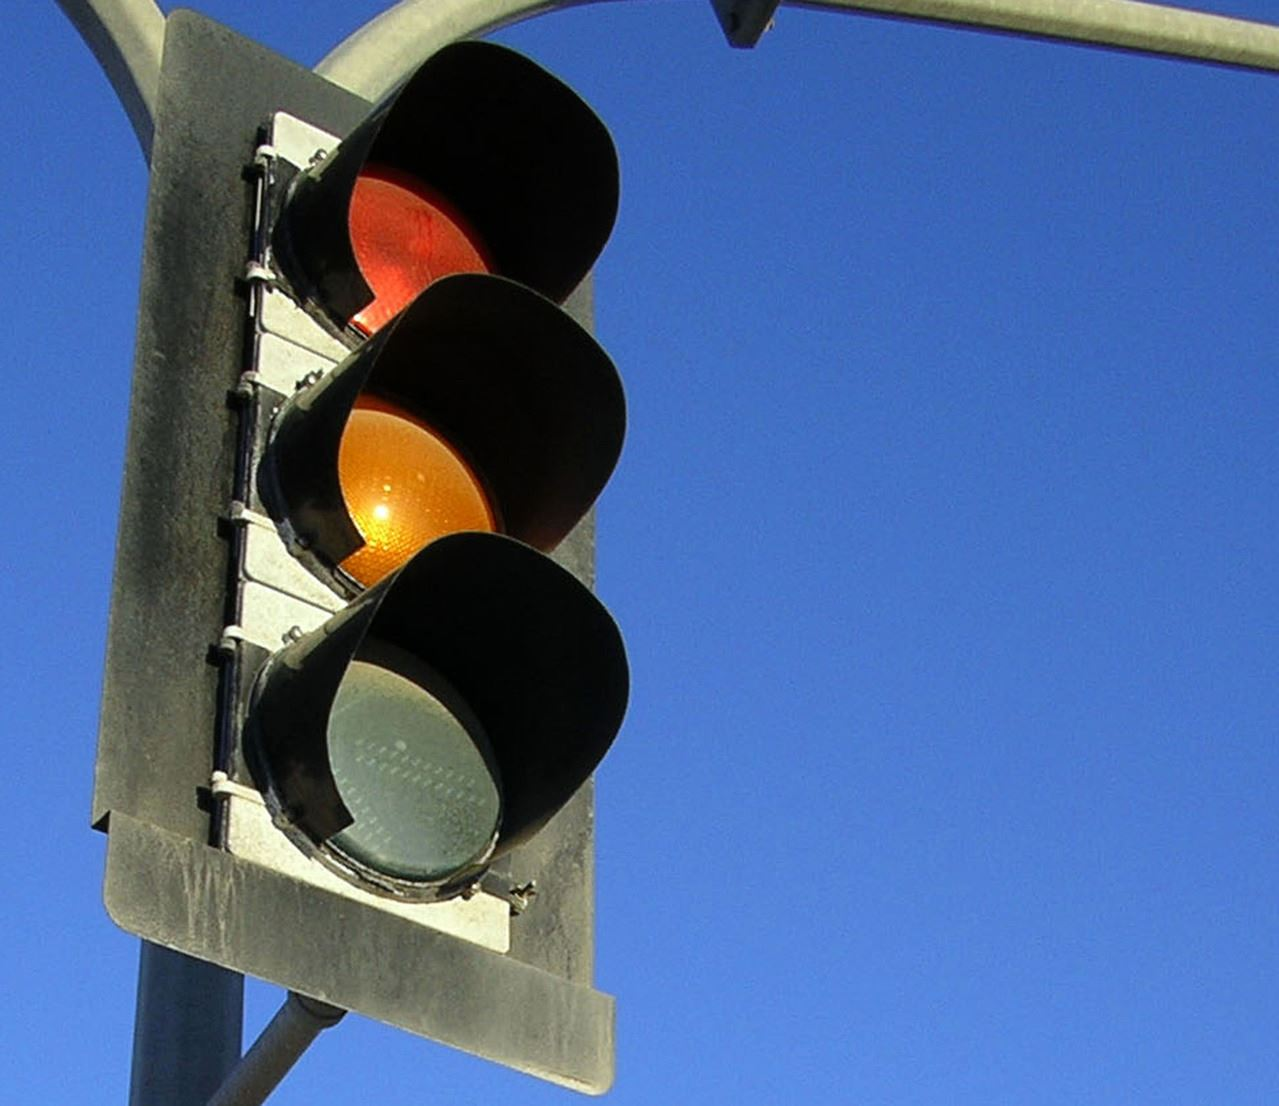 traffic-light-1446847-1279x1106